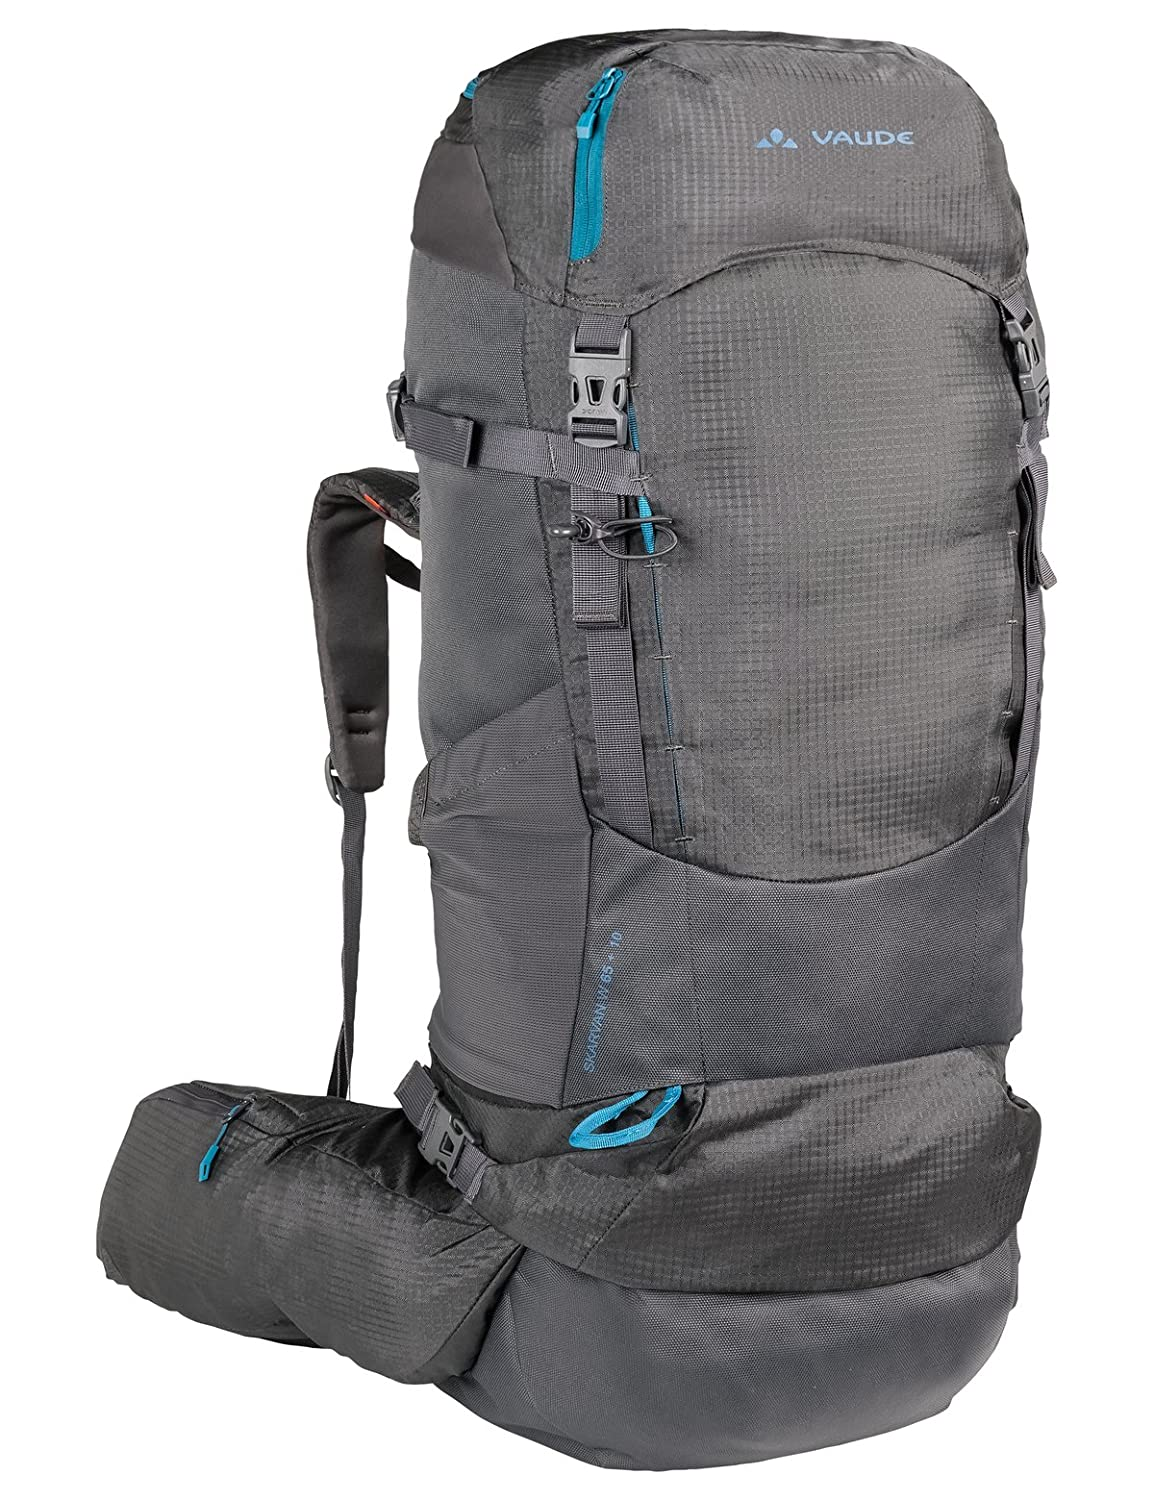 VAUDE Women s Skarvan 65+10 Backpack - 65L - 75L - Very Large Robust  Backpack for Trekking and Backpacking - Water Repellent - Exceptional Load  Distribution ... 47b112becc